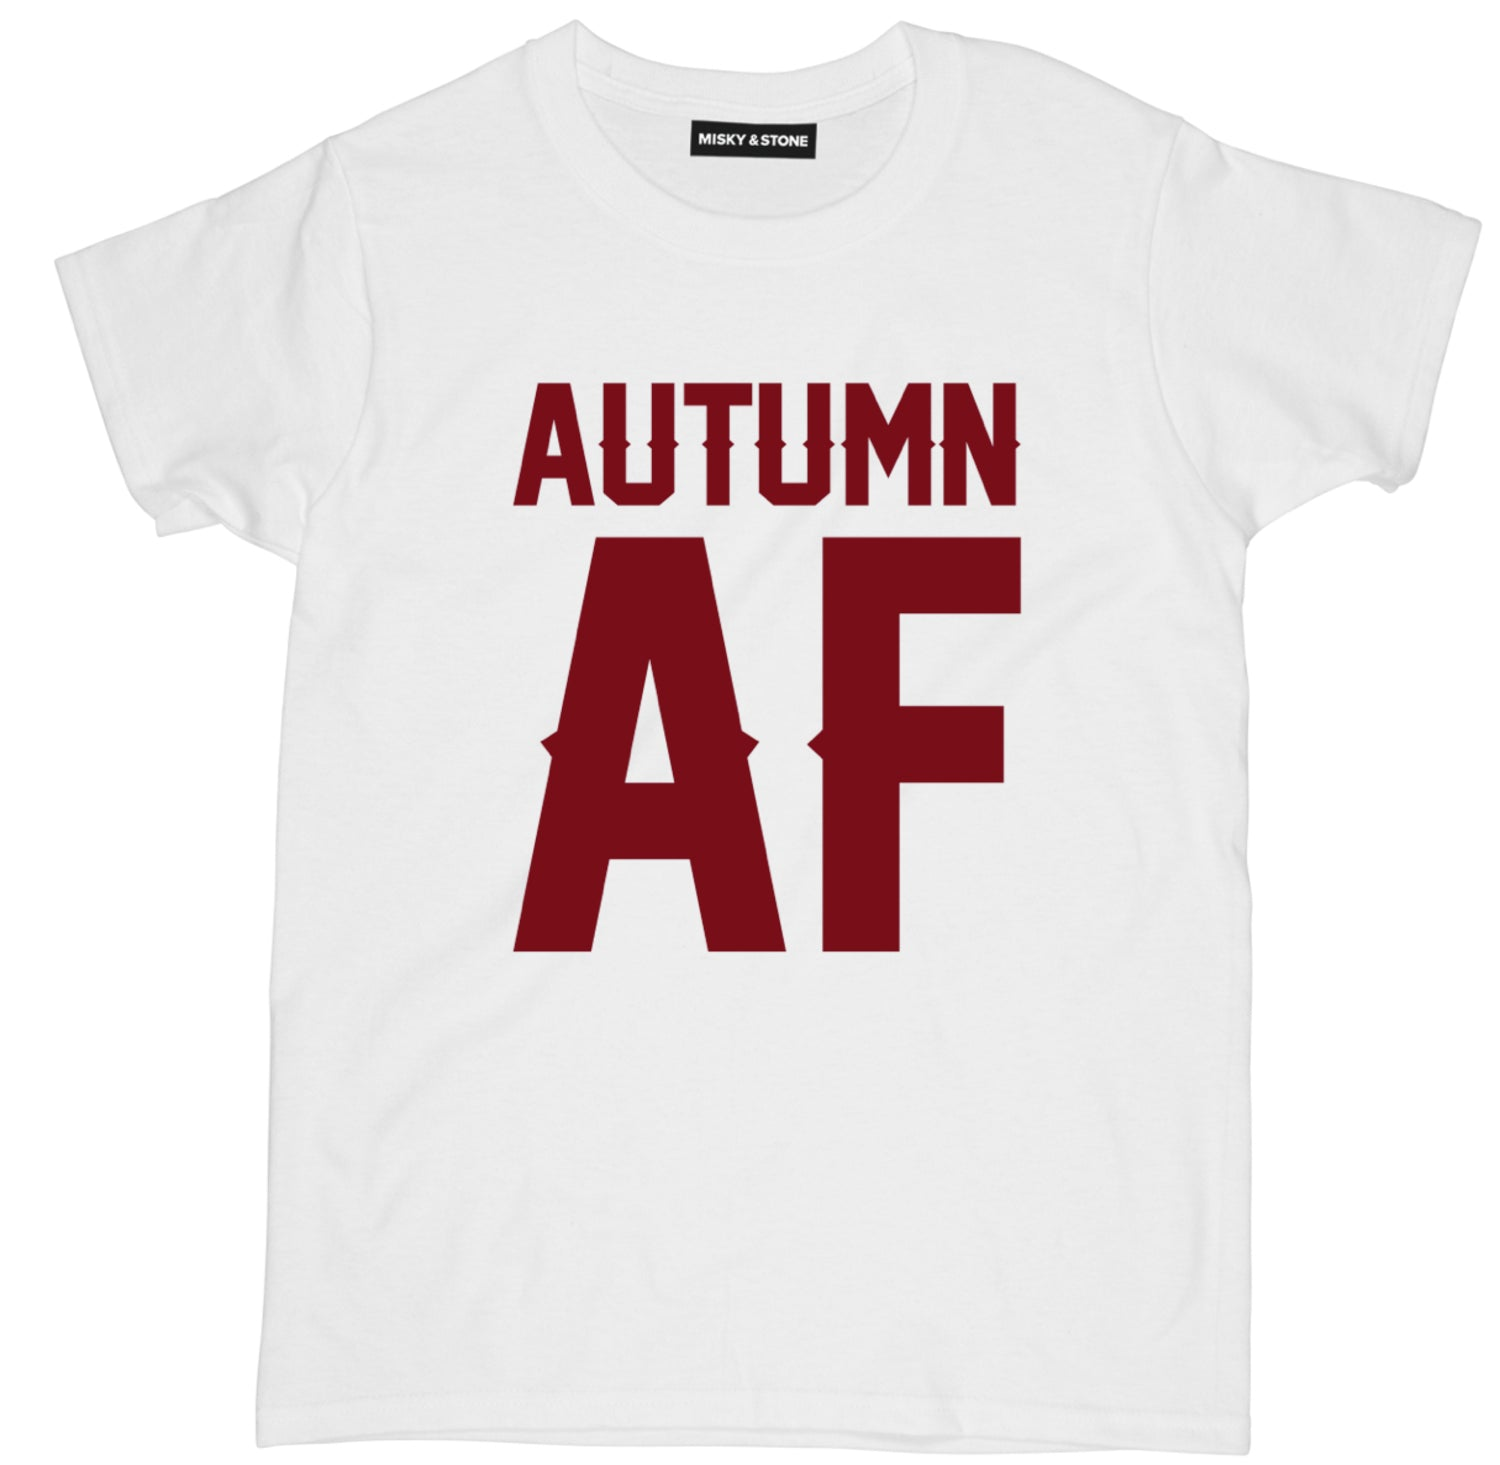 autumn af t shirt, autumn t shirt, fall t shirt, fall shirts, pumpkin spice shirt, pumpkin spice t shirt, pumpkin spice latte shirt, pumpkin spice tee shirt,